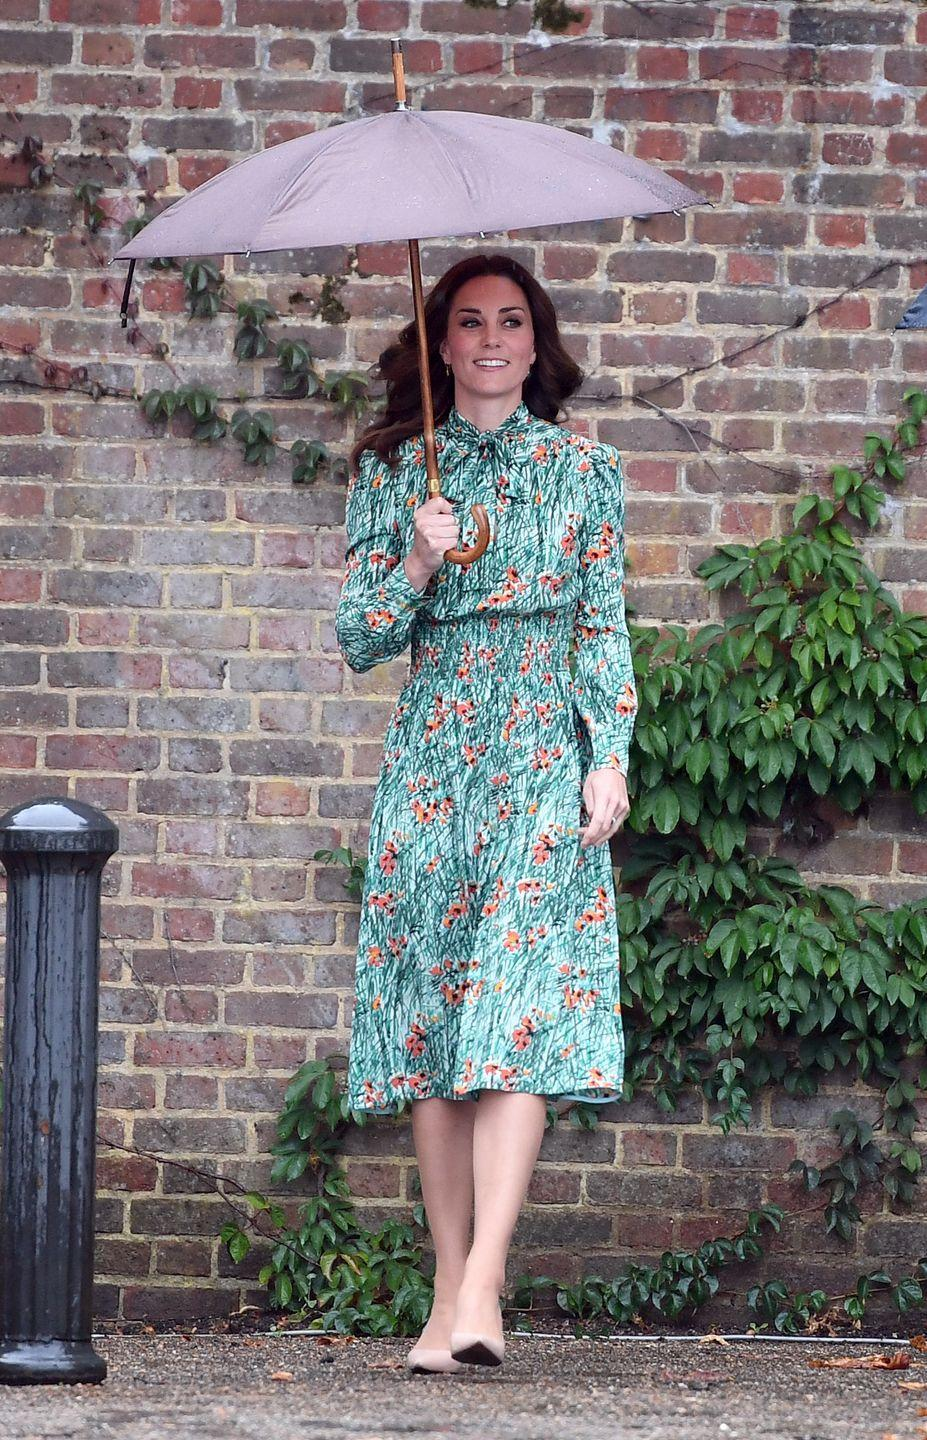 "<p>Kate chose a green tea-length Prada dress with poppy print for a visit to Diana's memorial garden on the 20th anniversary of her death in 2017. It's a subtle but lovely tribute to Diana, according to <em><a href=""https://www.instyle.com/news/kate-middleton-prince-william-harry-diana-memorial-garden"" rel=""nofollow noopener"" target=""_blank"" data-ylk=""slk:InStyle"" class=""link rapid-noclick-resp"">InStyle</a></em>, as poppies signify remembrance in the UK. The dress also featured a bow neckline, a style Diana often wore herself. </p>"